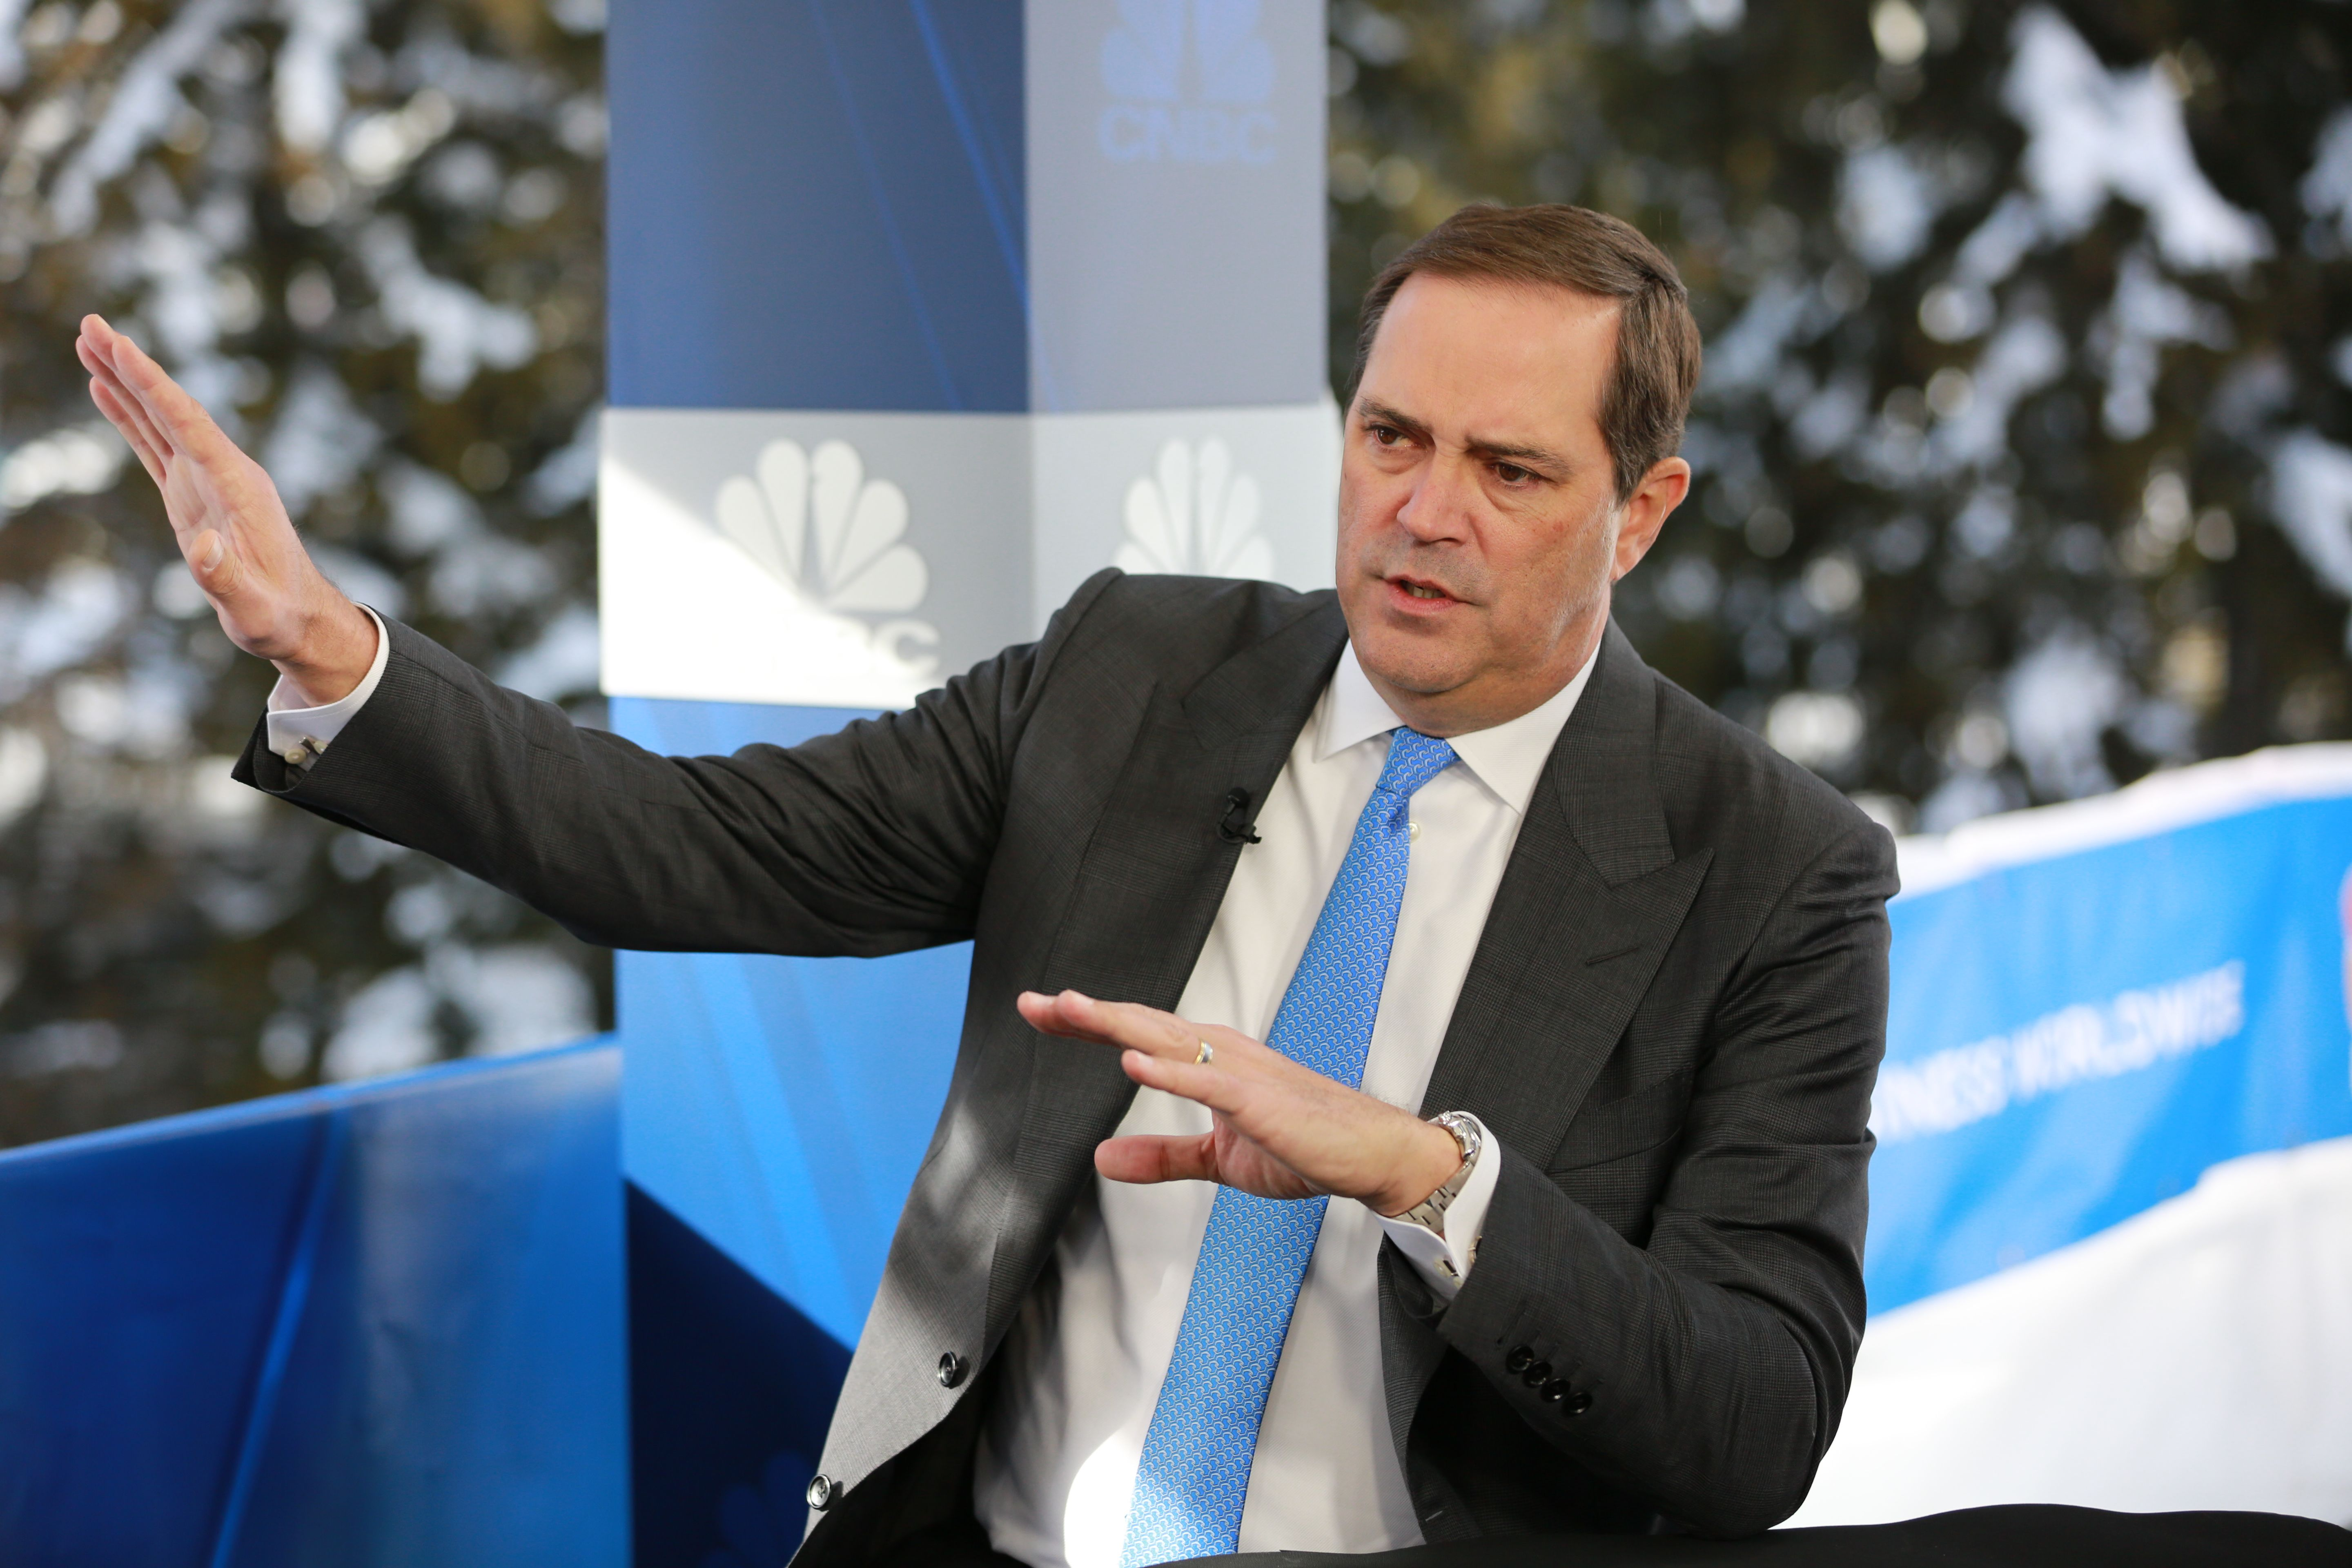 Cisco plans to acquire Acacia Communications in a $2.6 billion deal